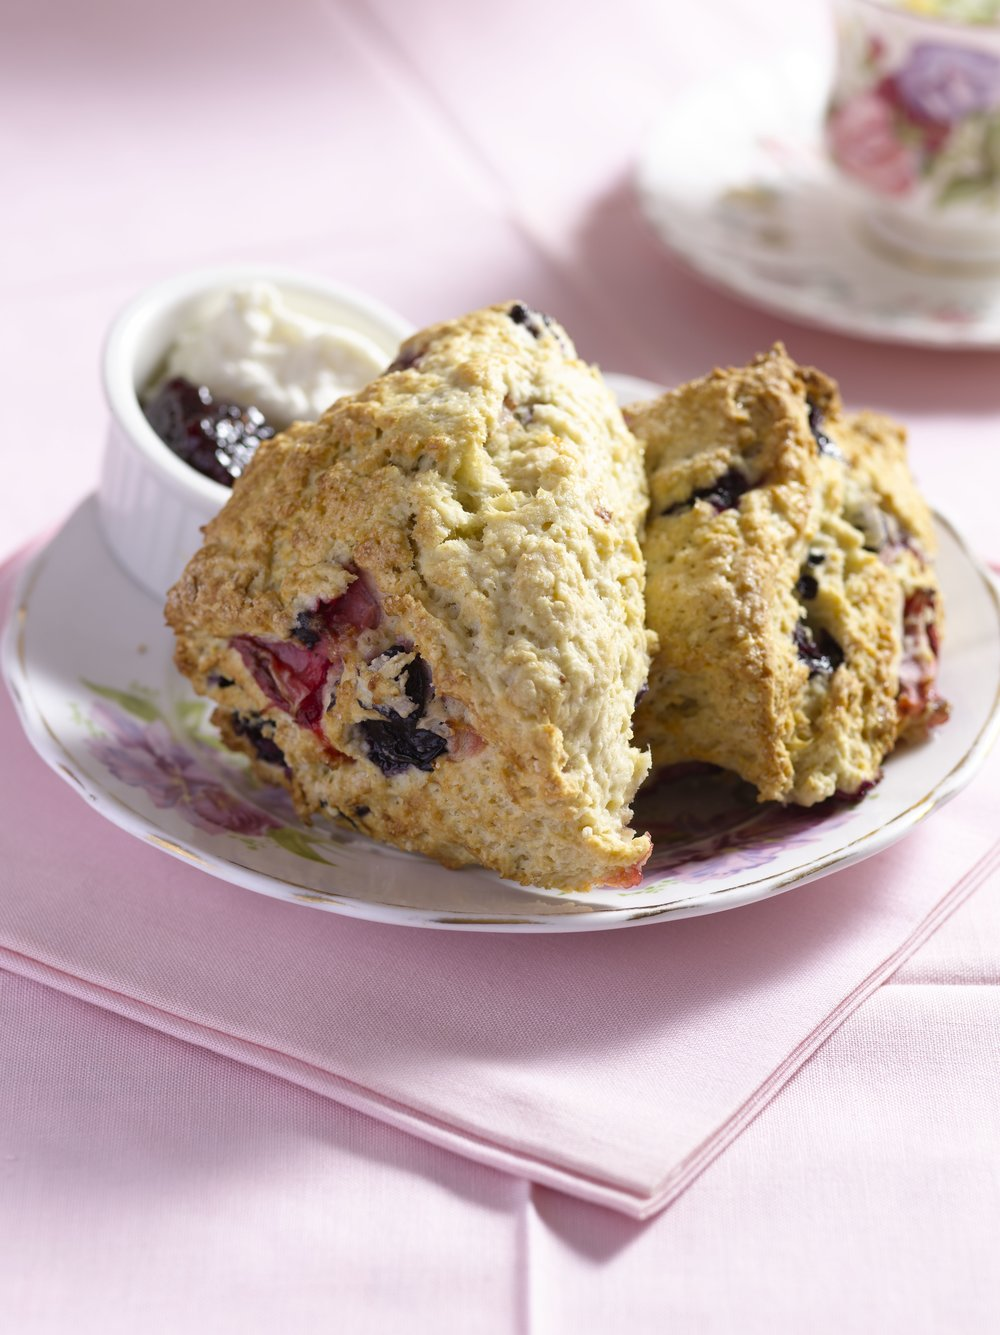 Mixed berry scones with homemade clotted cream and raspberry preserves